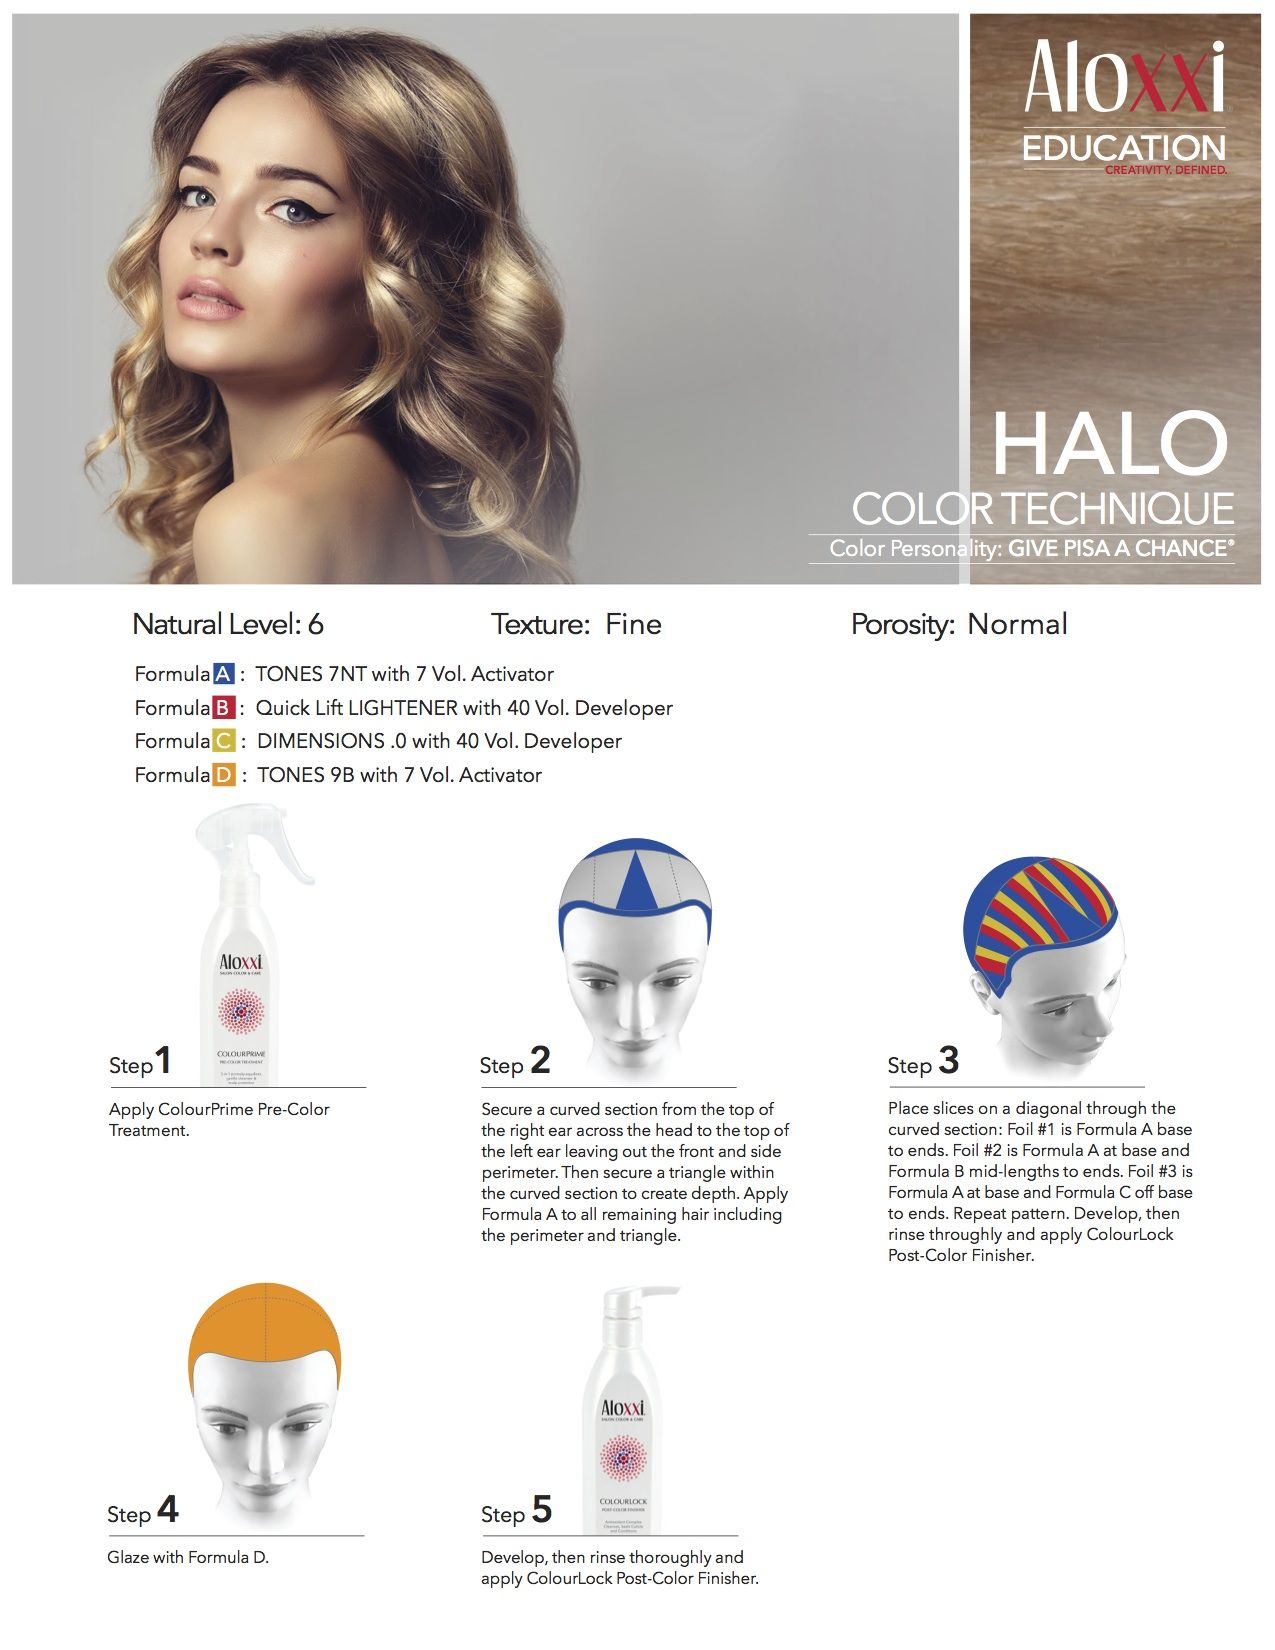 Aloxxi Education Halo Hair Color Technique Color Personality Give